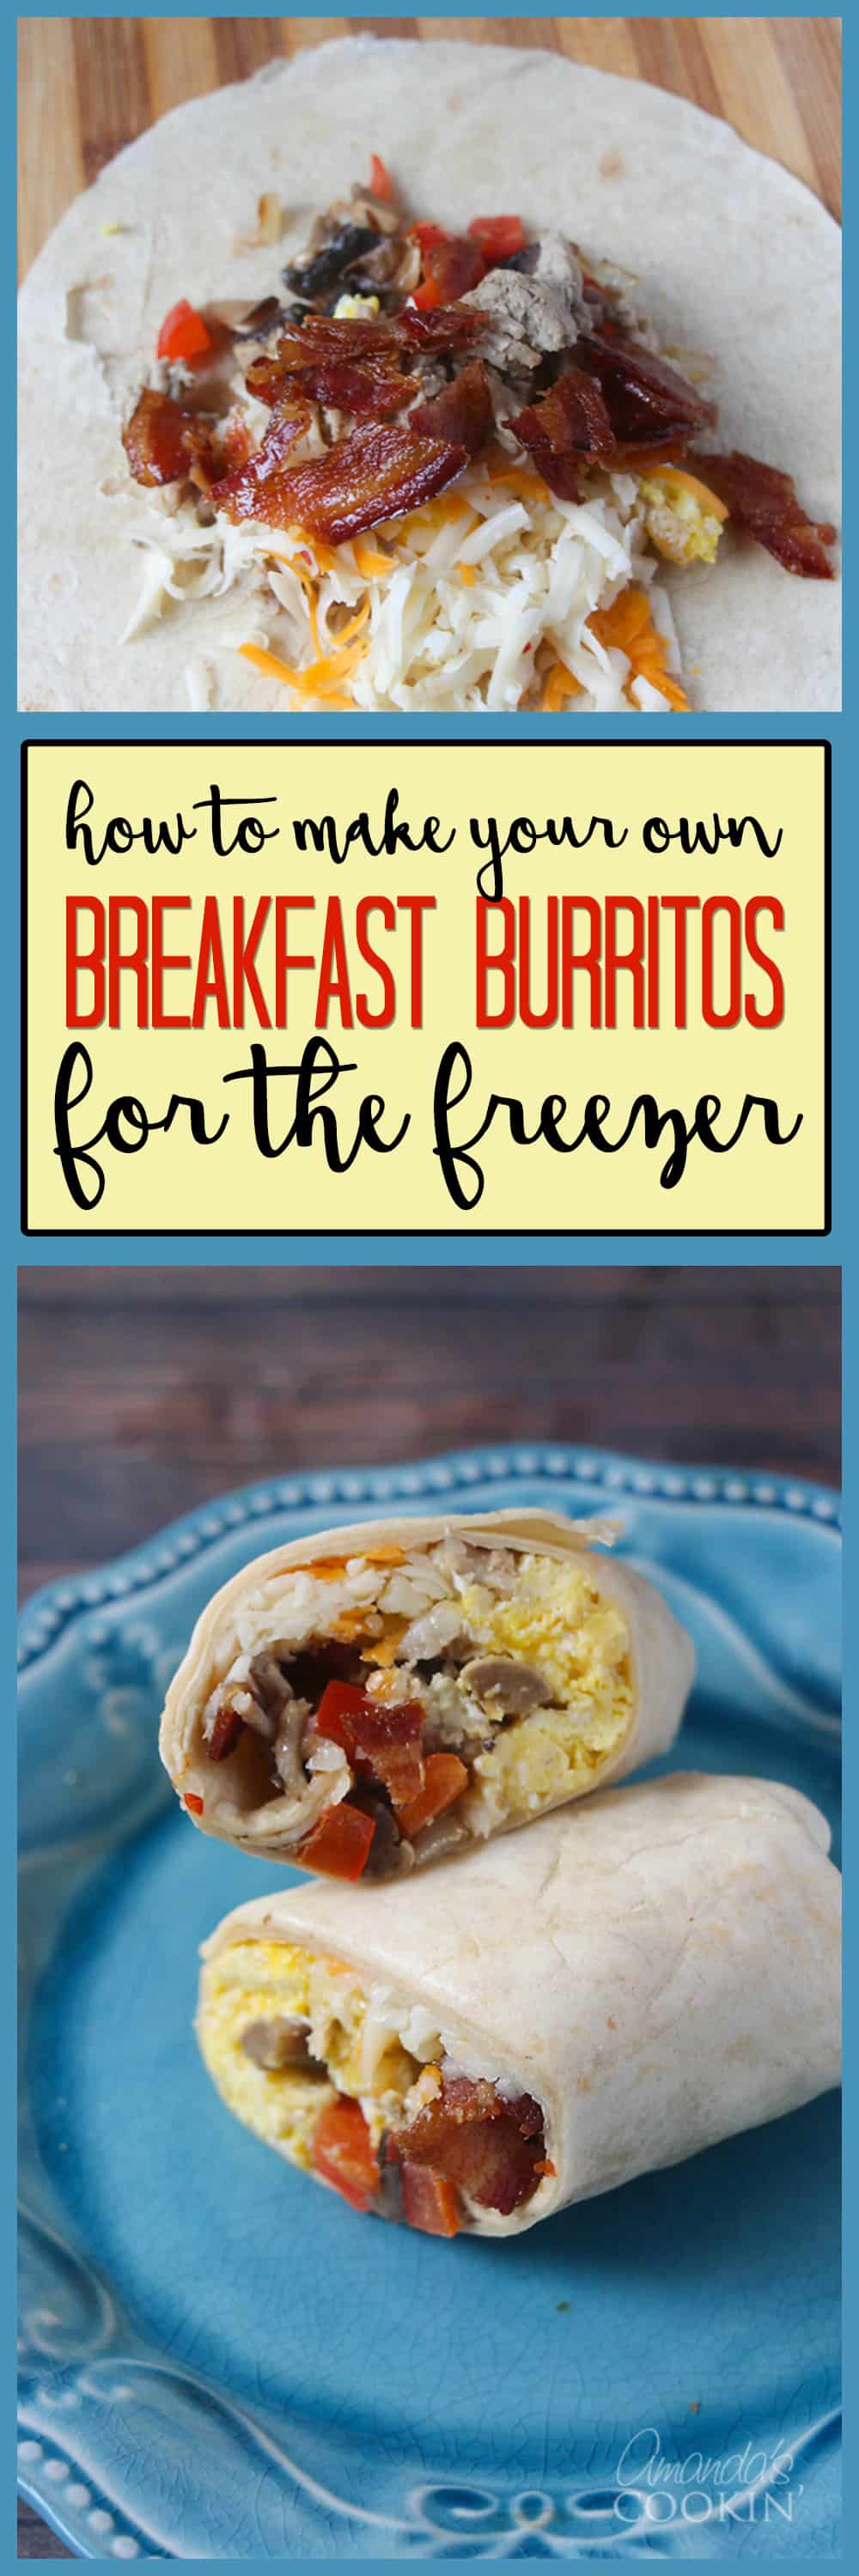 A photo of breakfast burritos on a plate.